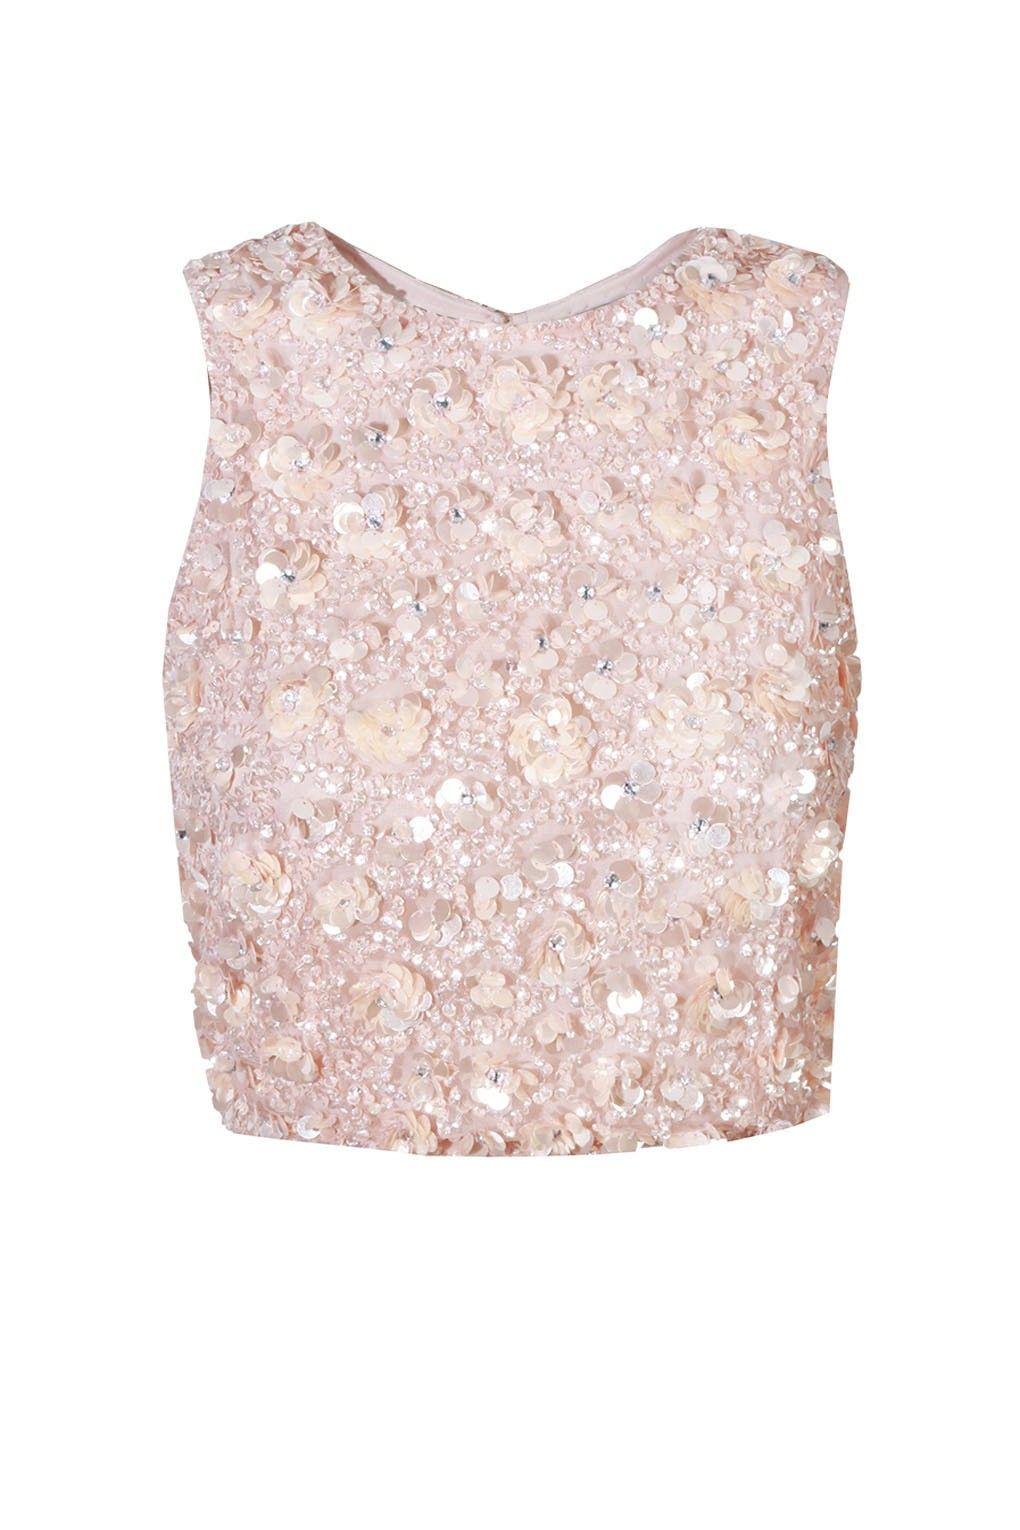 486554214a76d Lace   Beads Hazel Cut Out Pink Sequin Top